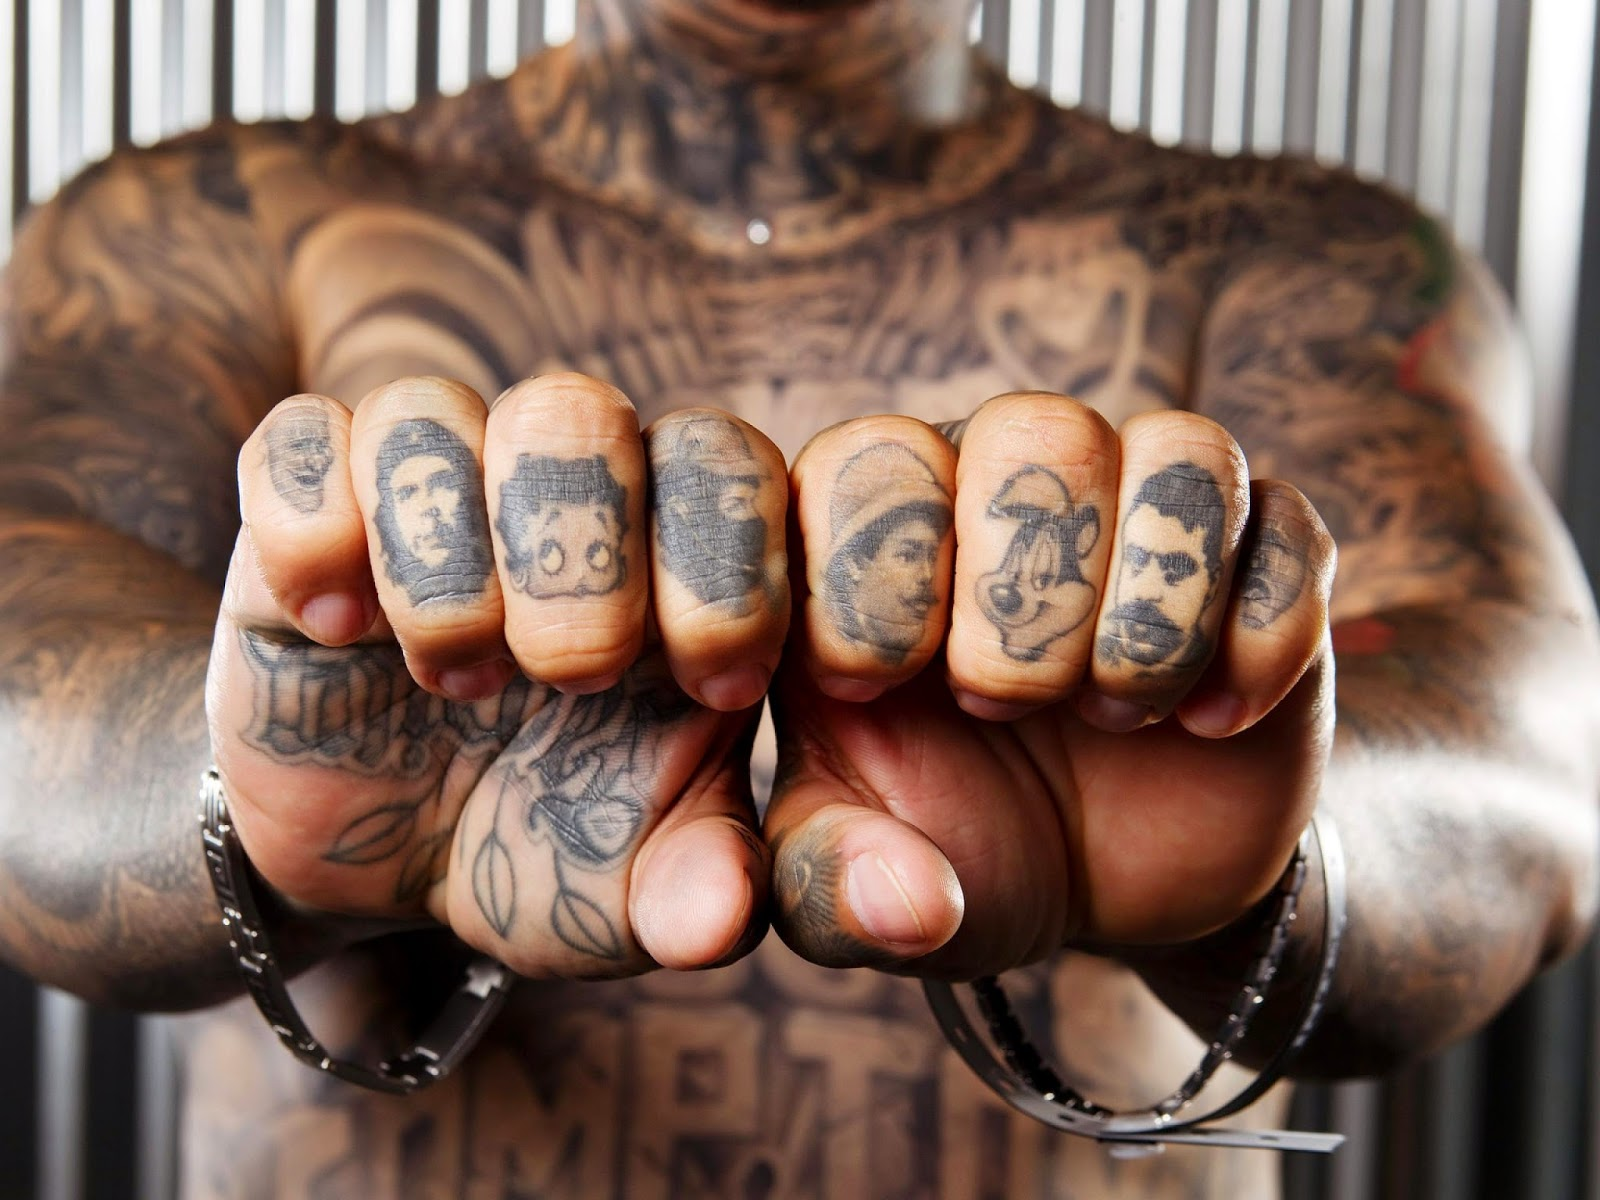 Best Tattoos Hd Wallpapers Best Wallpapers Pics Free Download